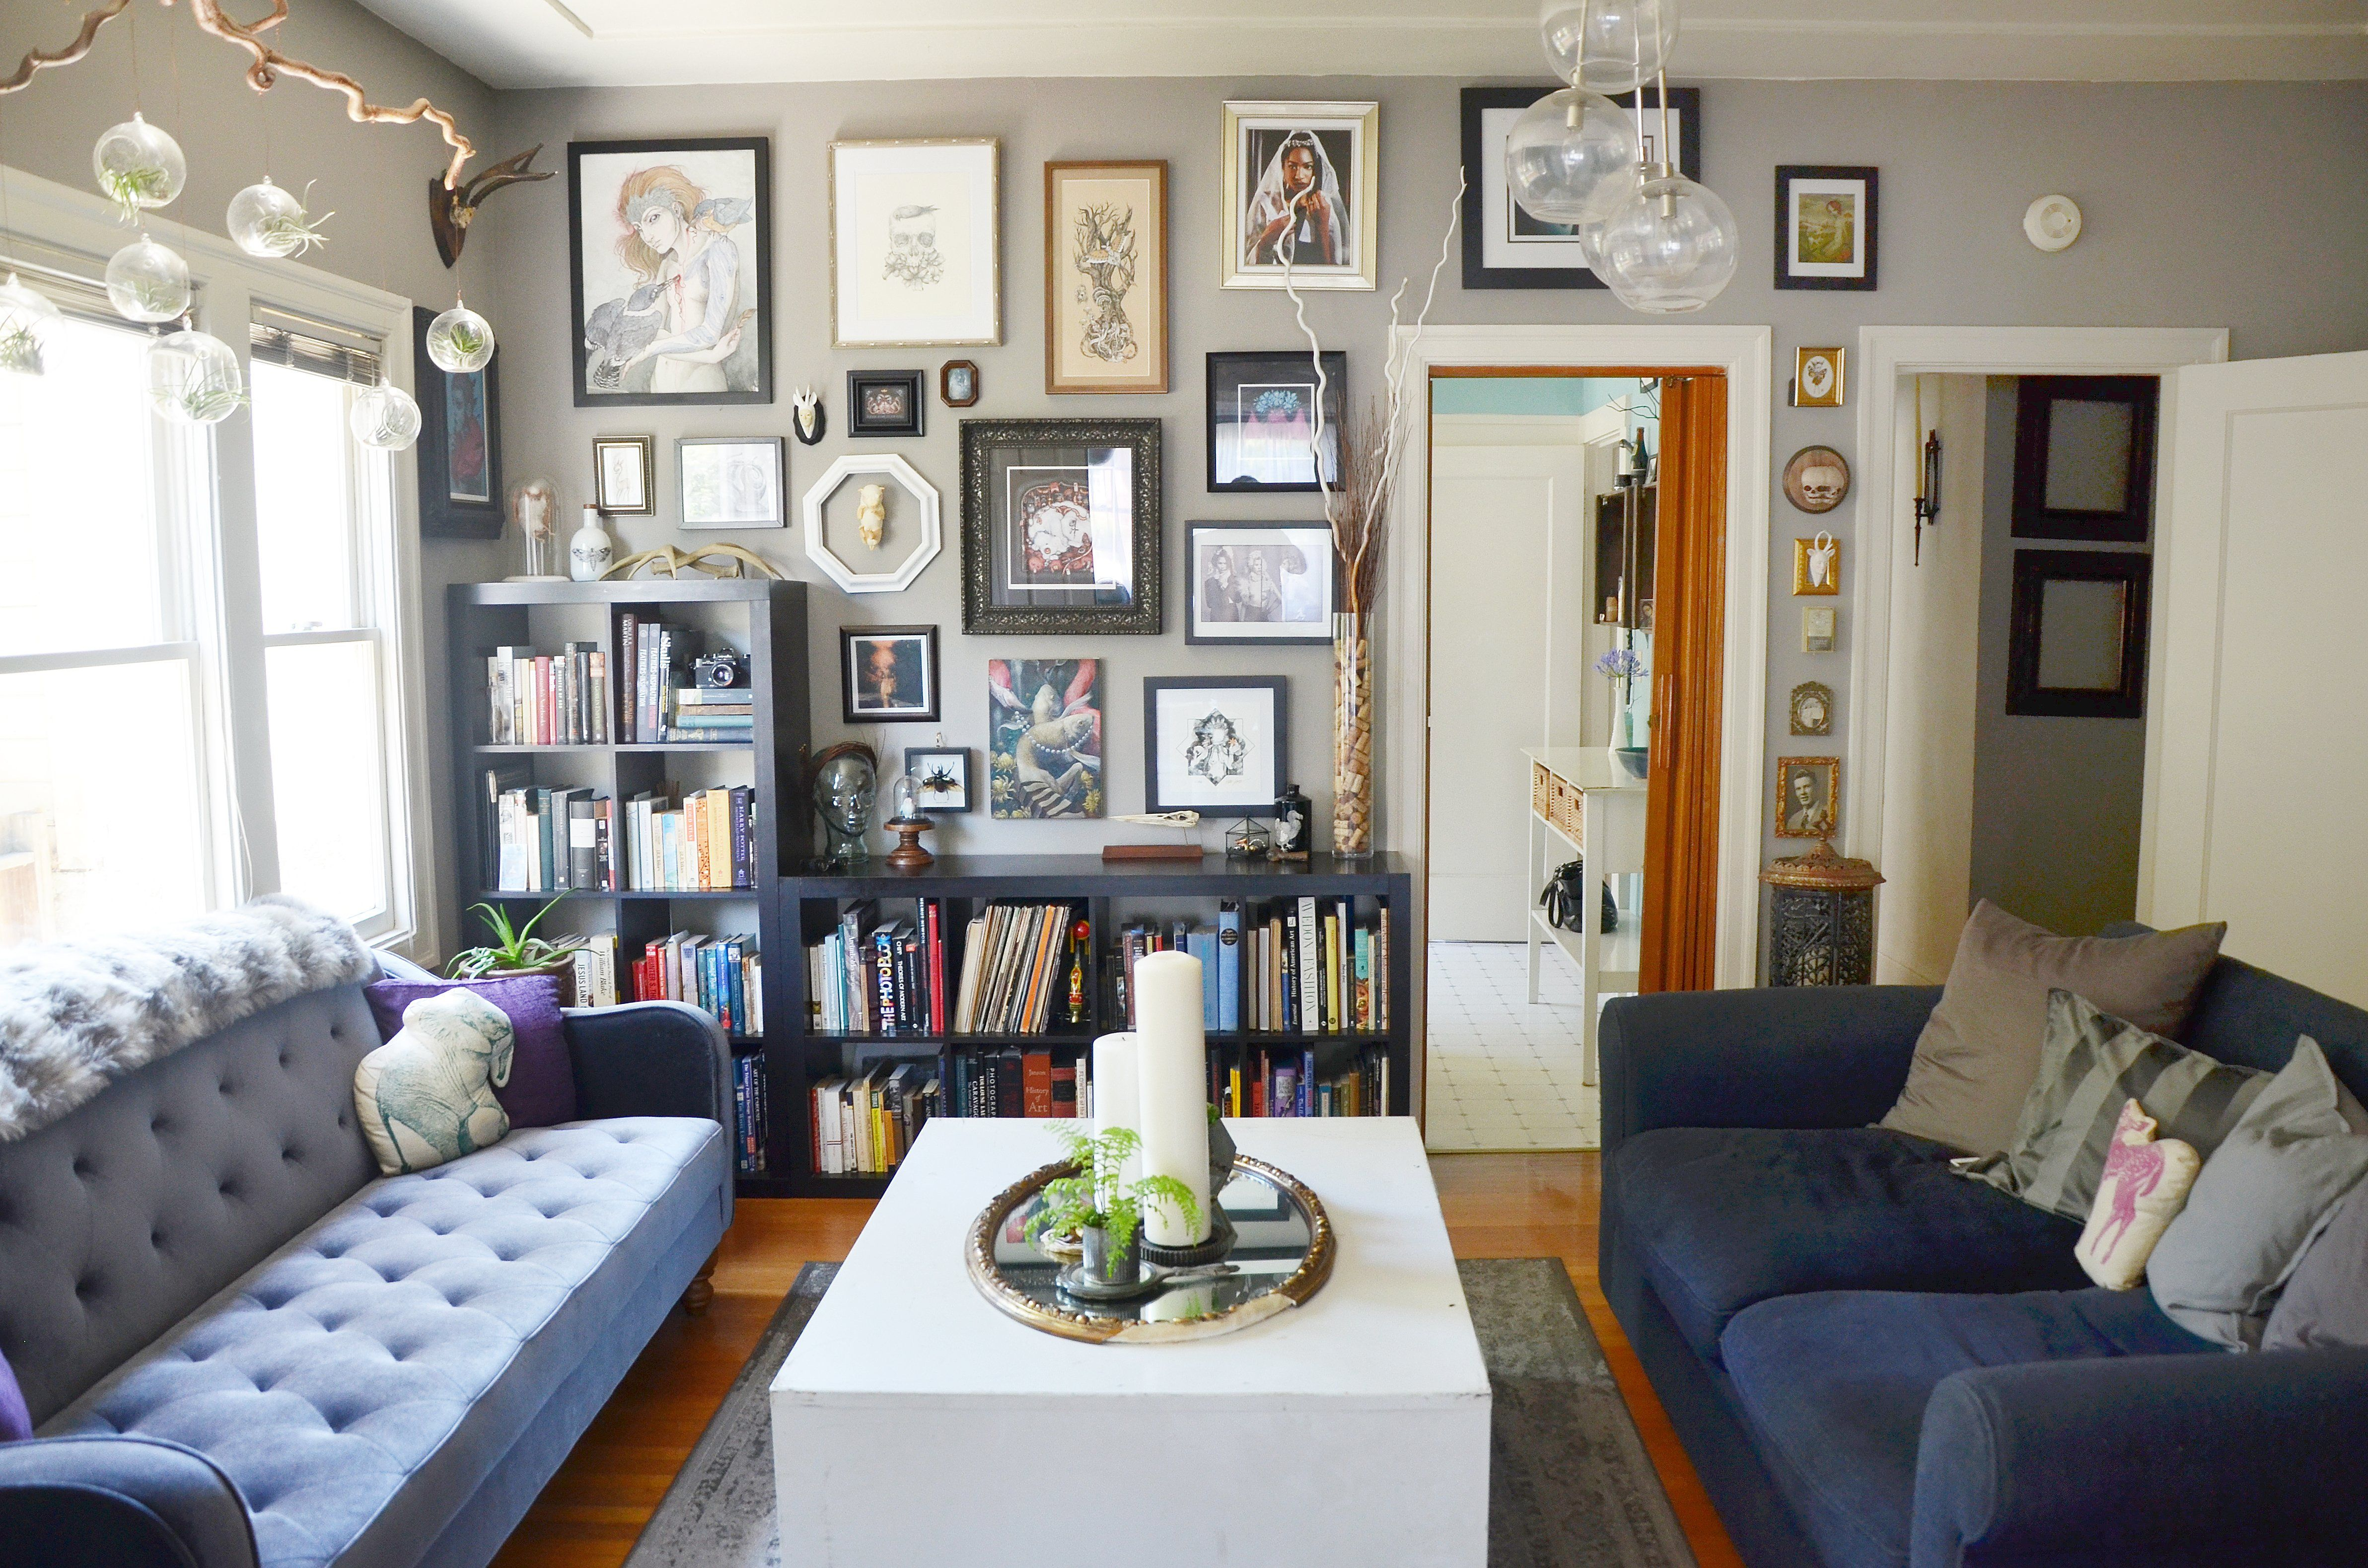 Victorian Style In An Oakland Apartment Of Wonder Oddities House Tour